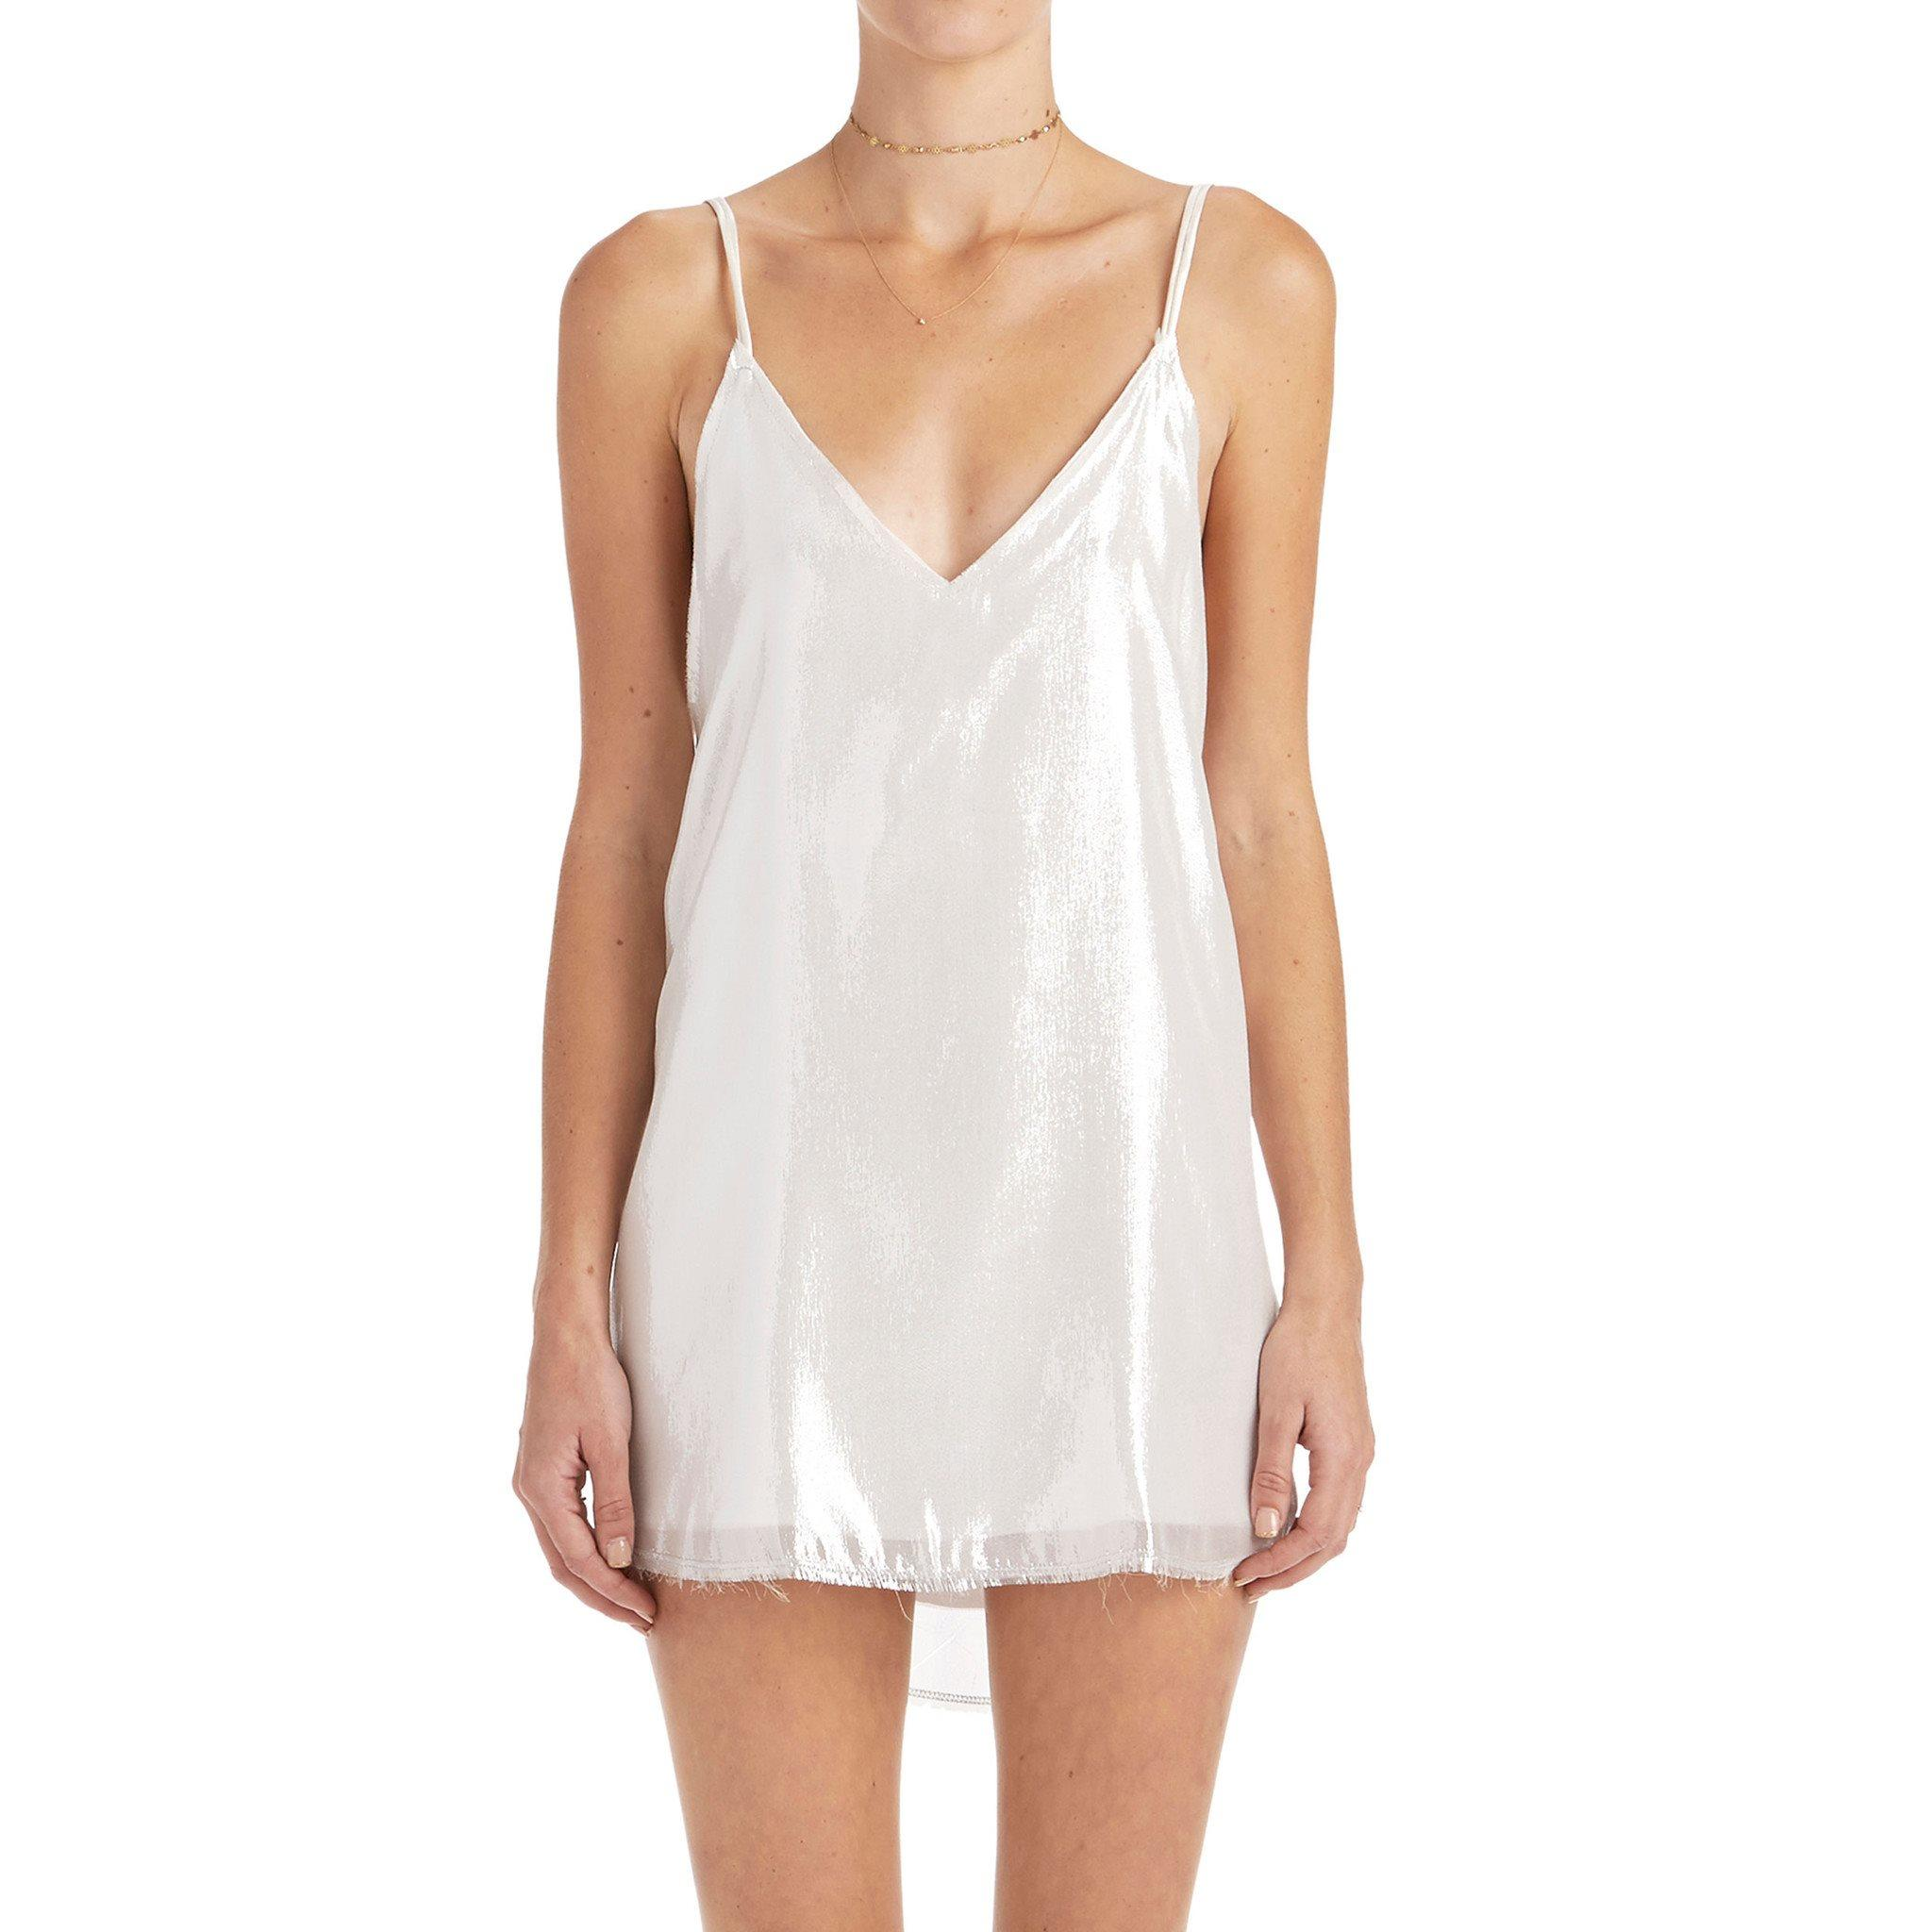 a2f05baee0 Zillah Slip Dress - Silver from are you am i